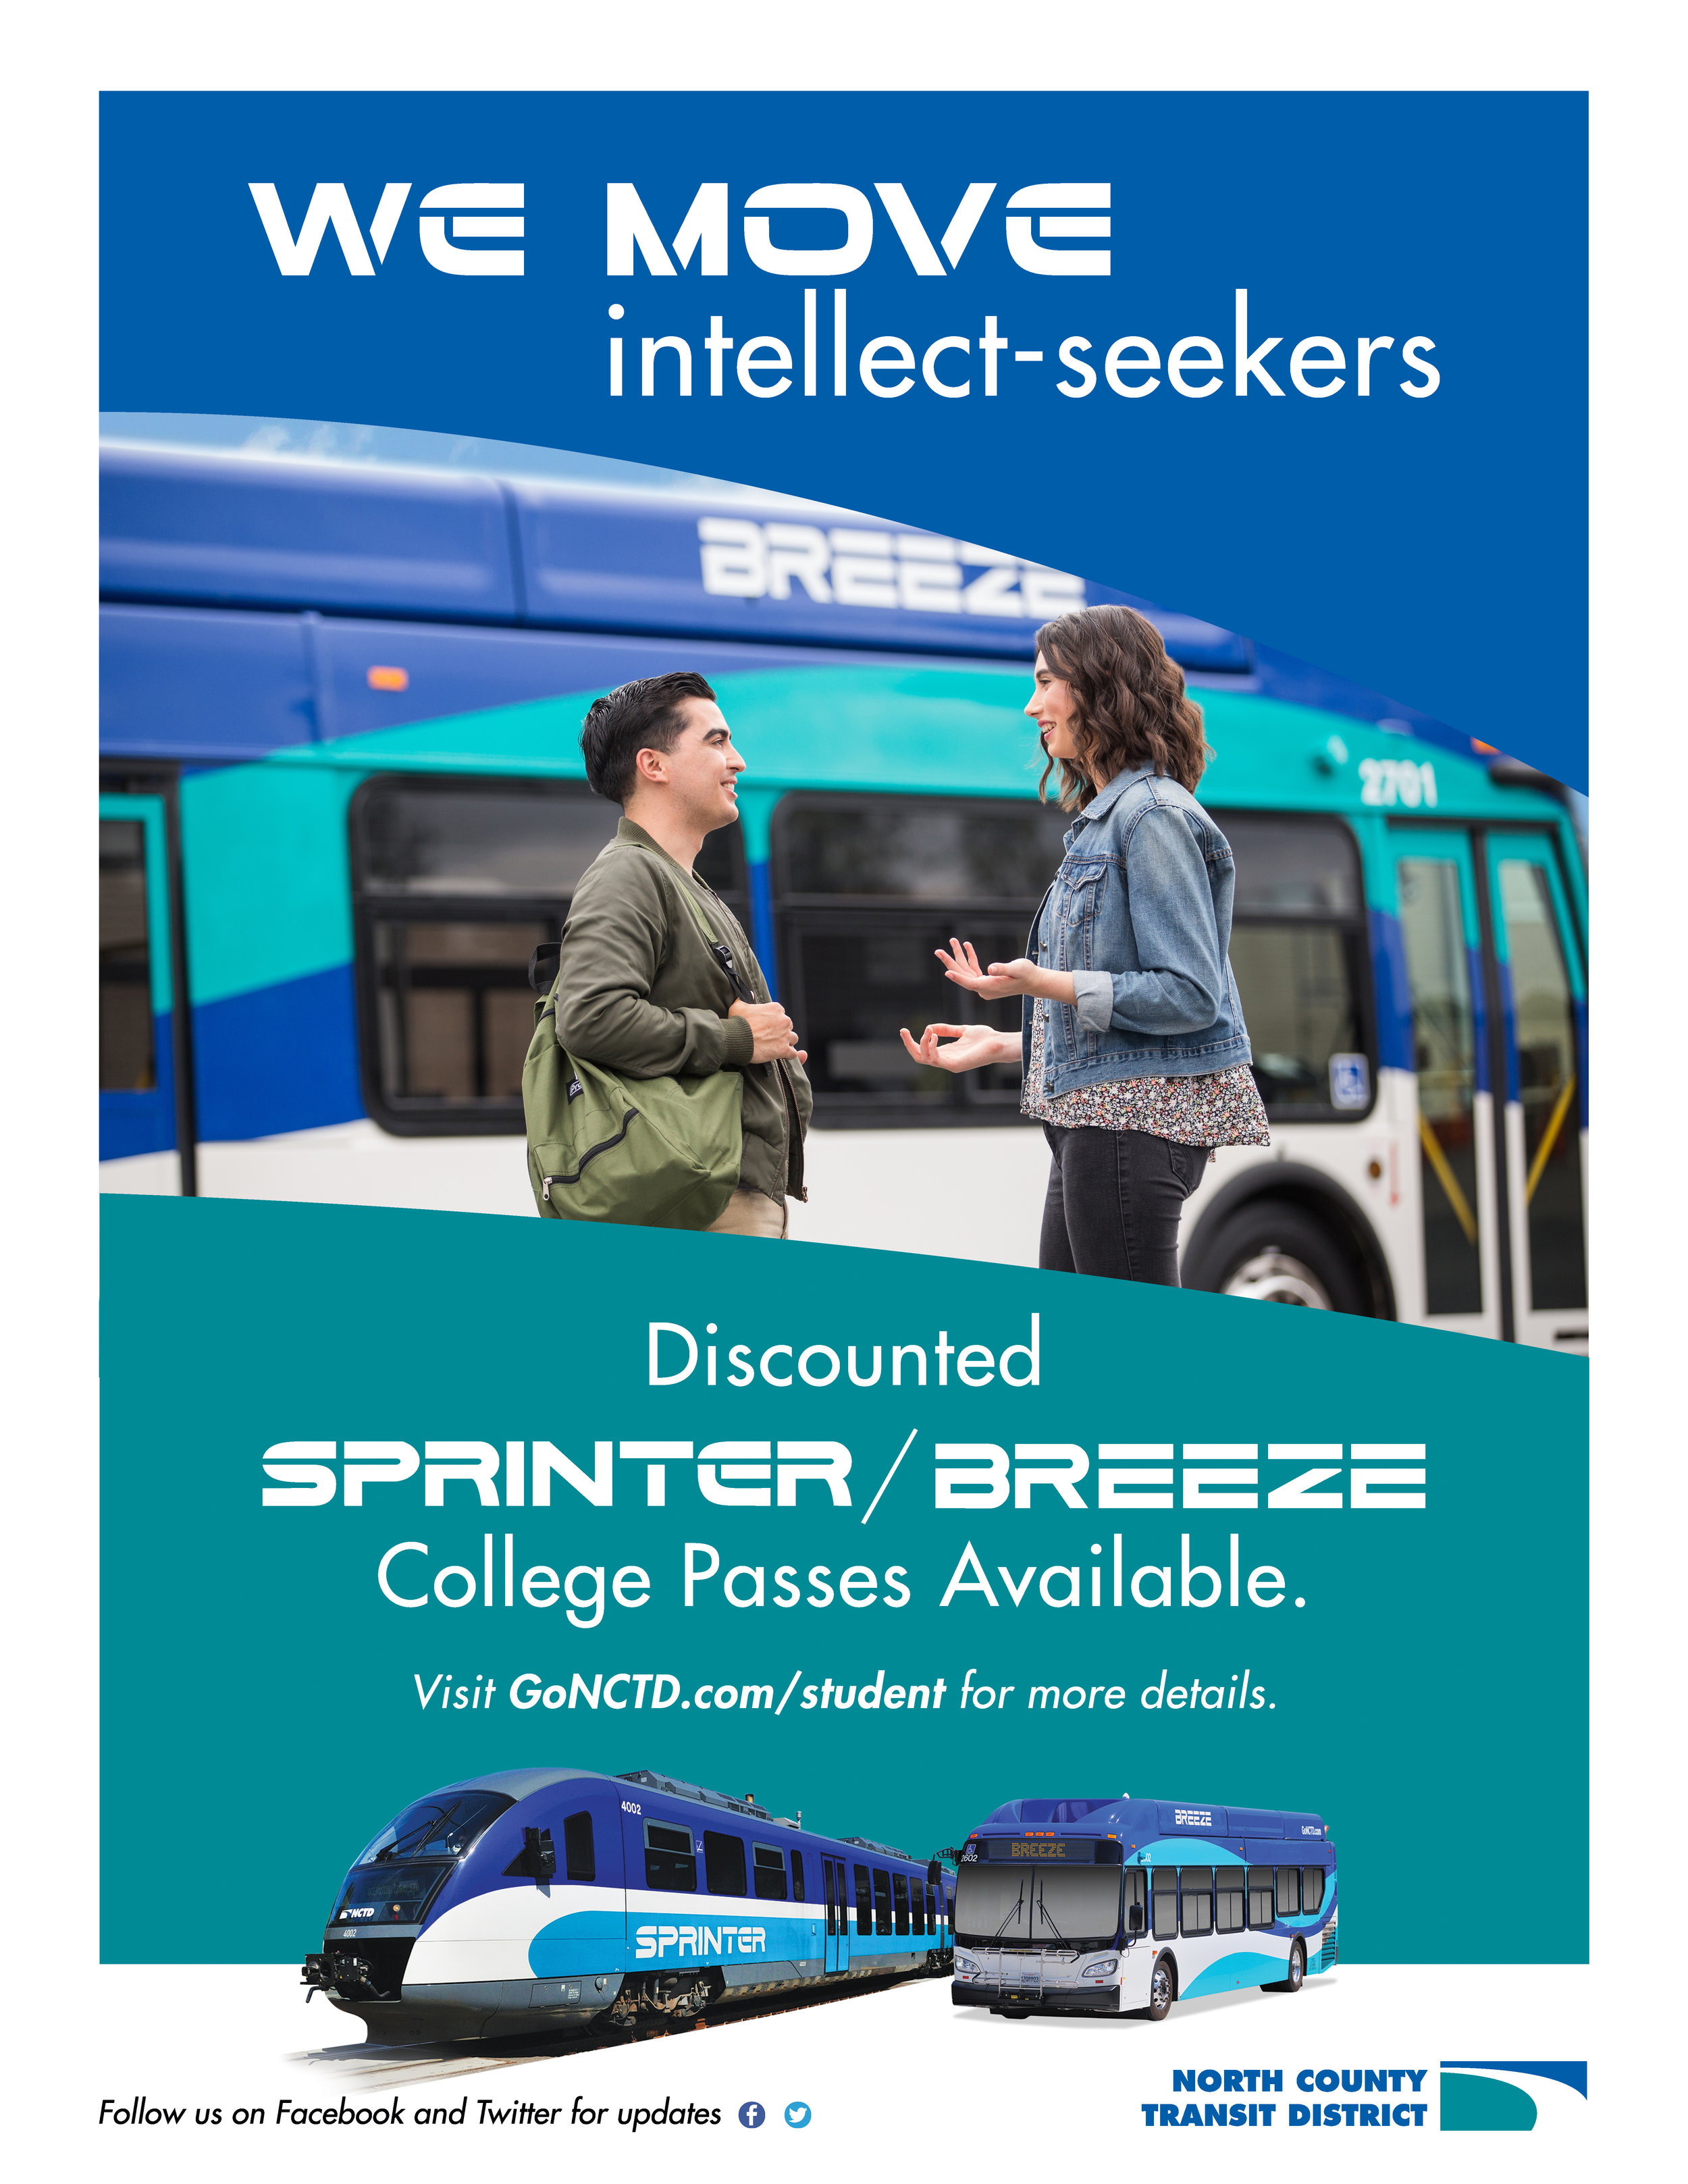 discounted college passes poster